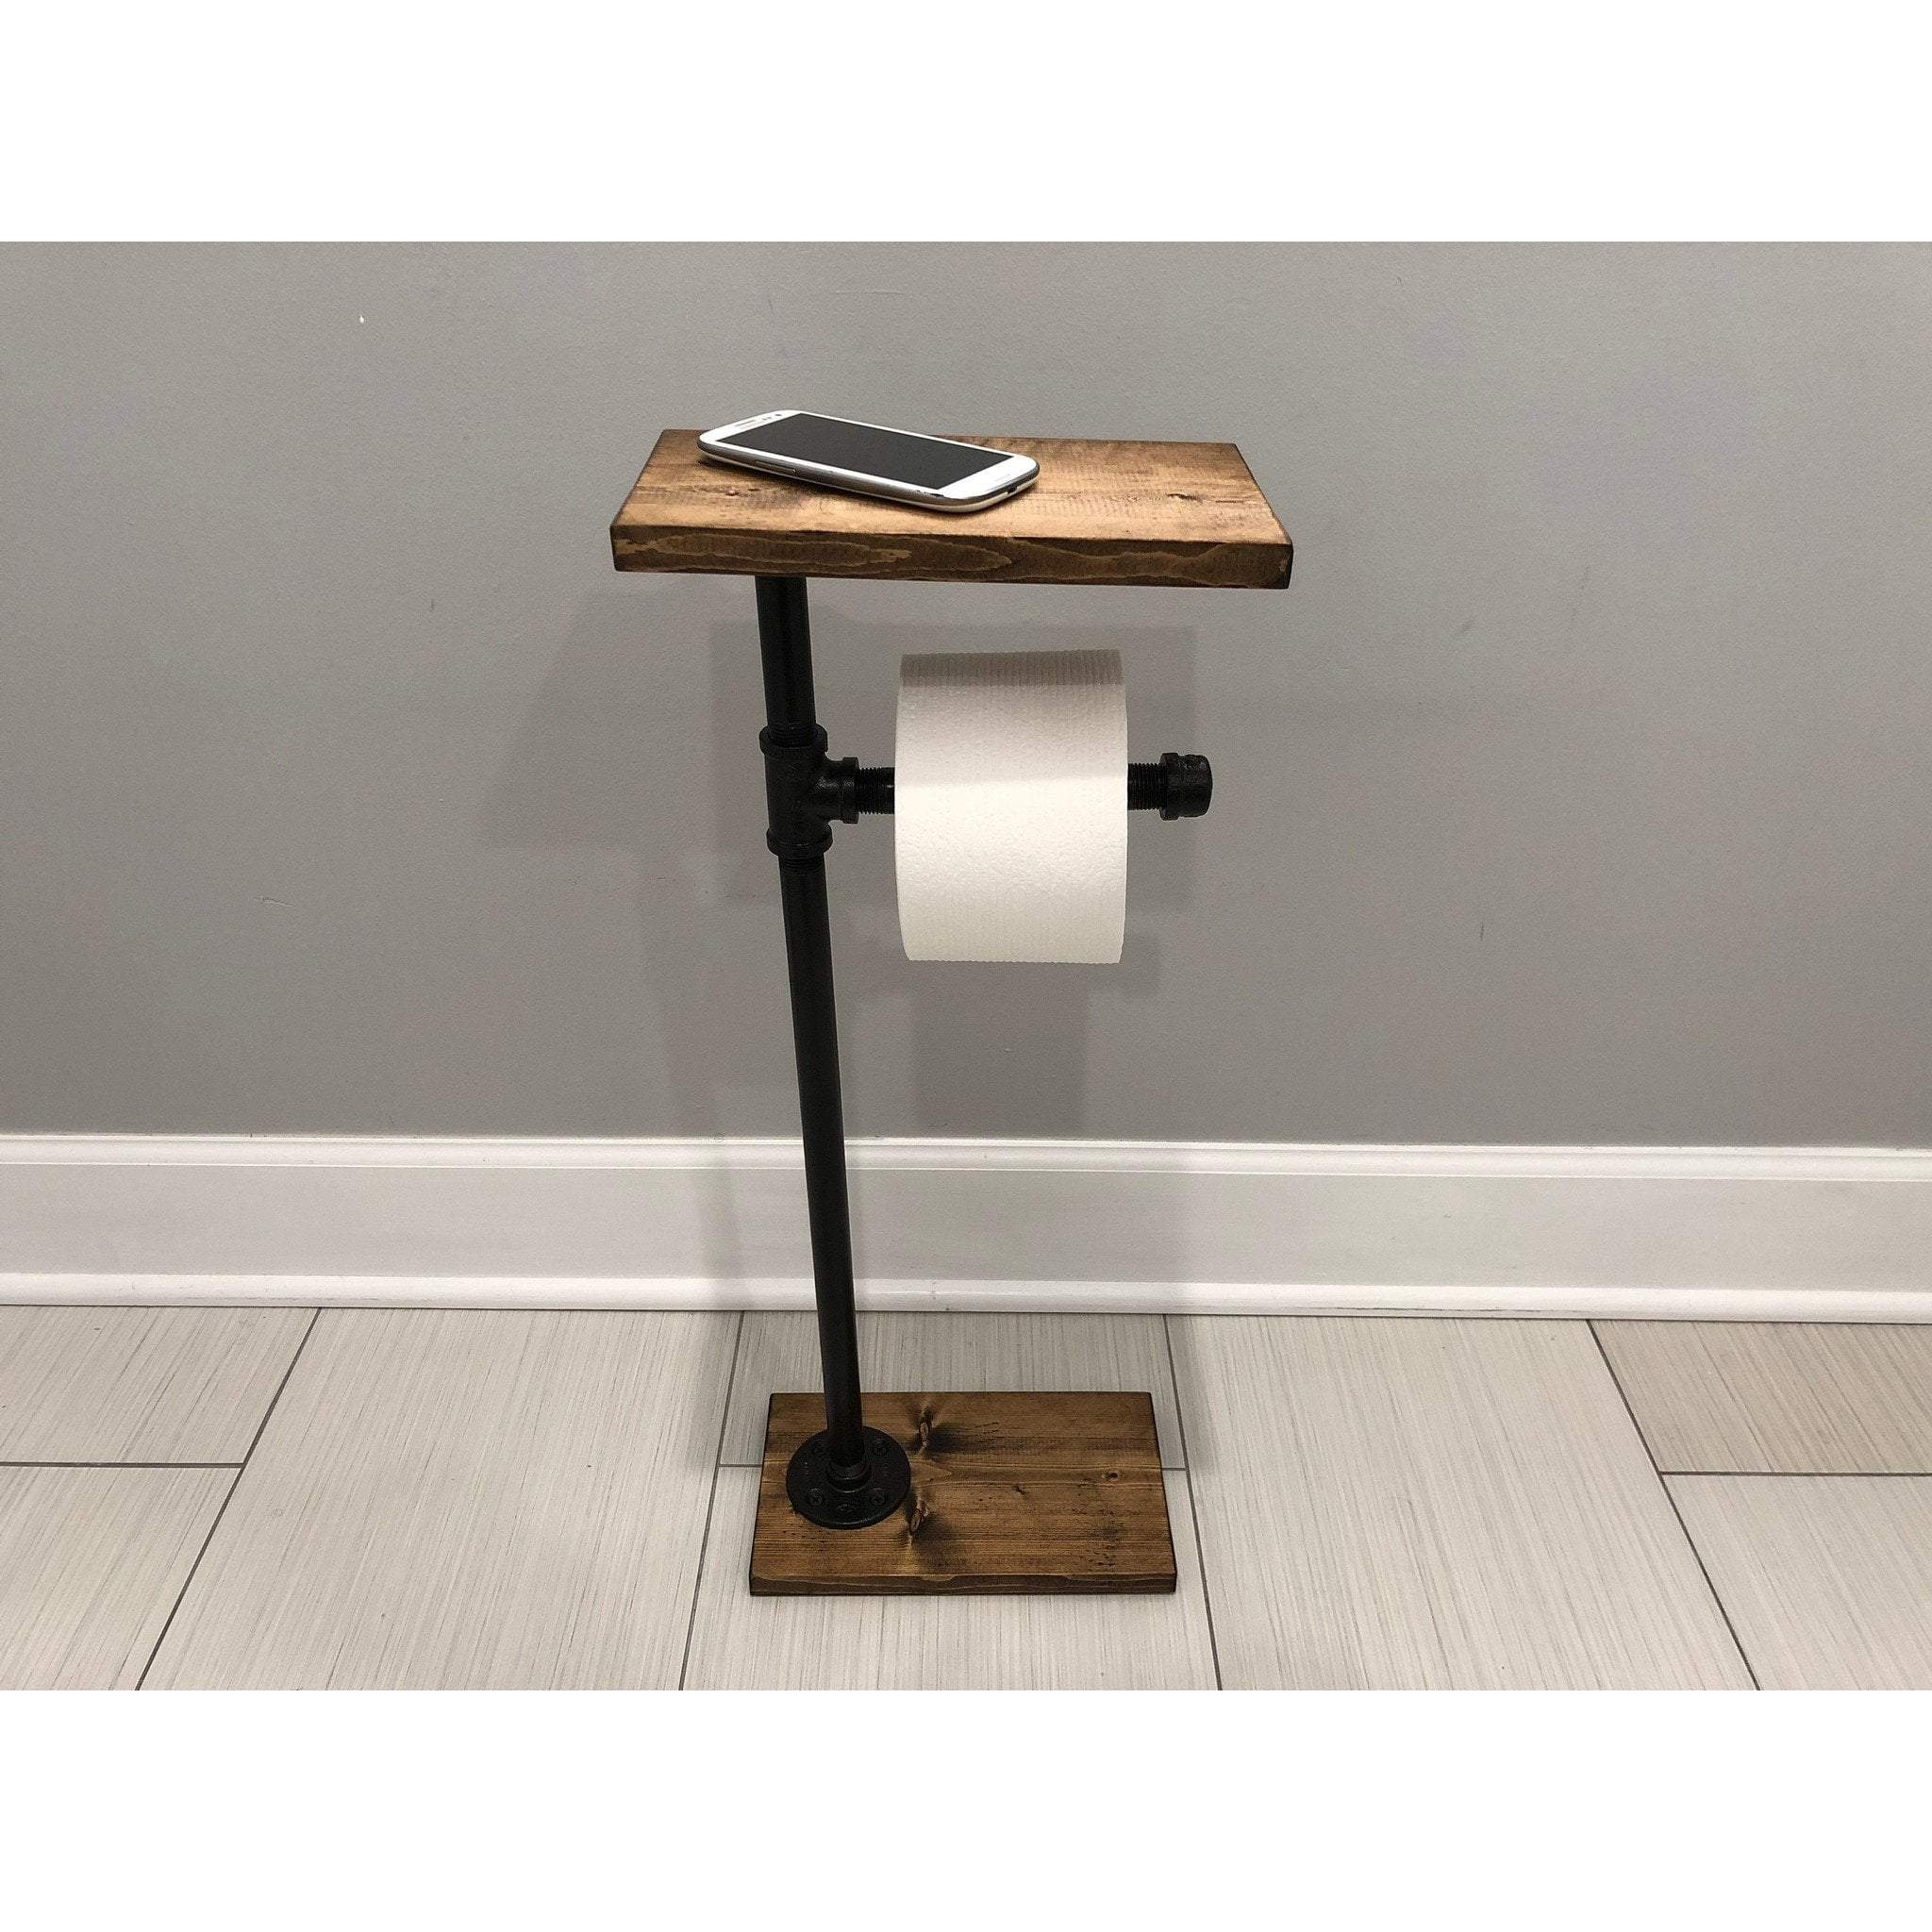 Metal Toilet Paper Holder Standing Toilet Paper Holder with Wooden Shelf